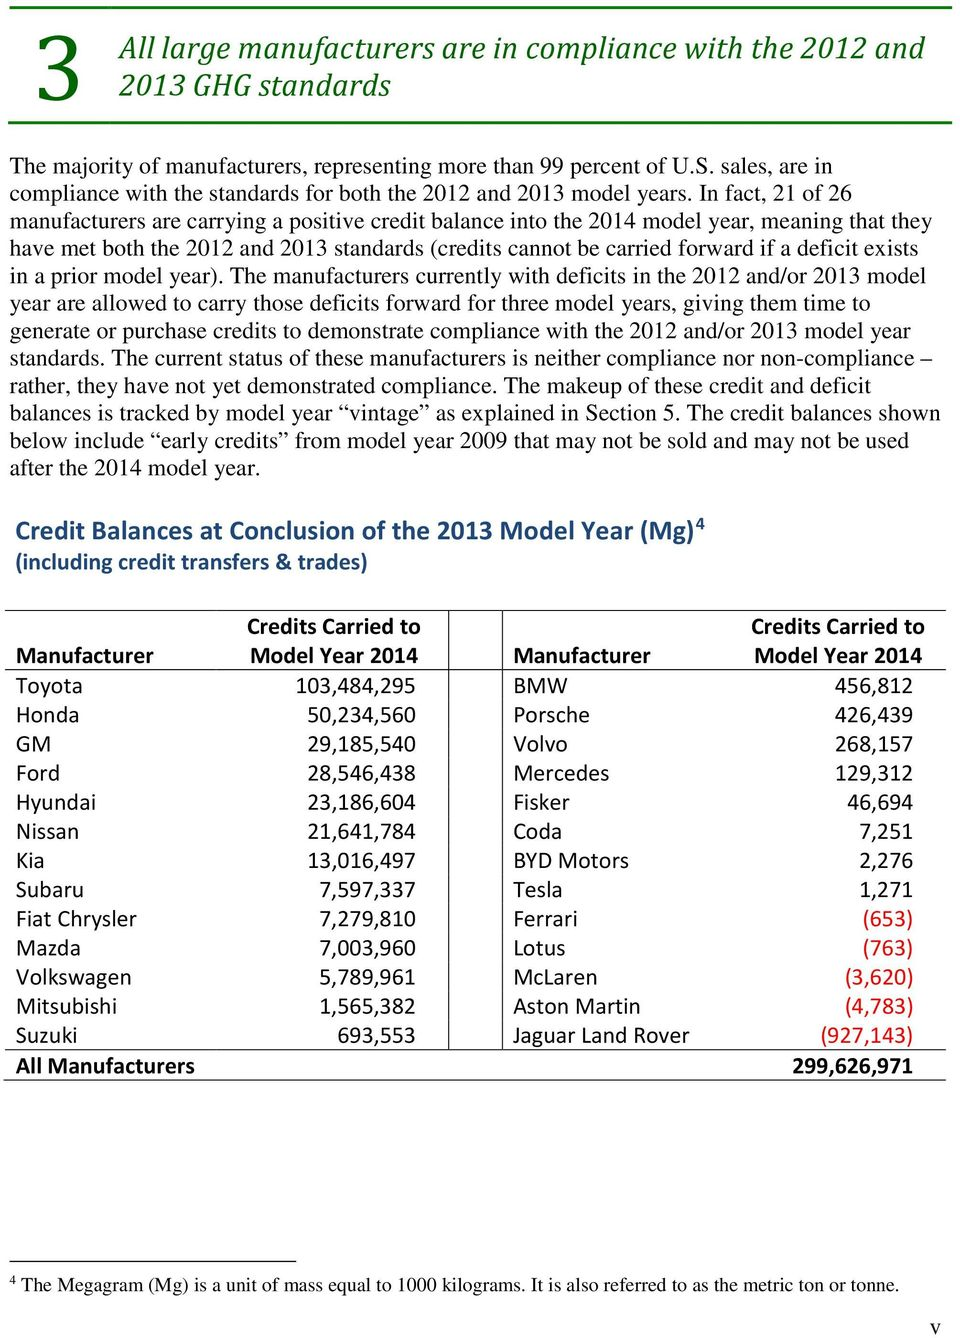 In fact, 21 of 26 manufacturers are carrying a positive credit balance into the 214 model year, meaning that they have met both the 212 and 213 standards (credits cannot be carried forward if a